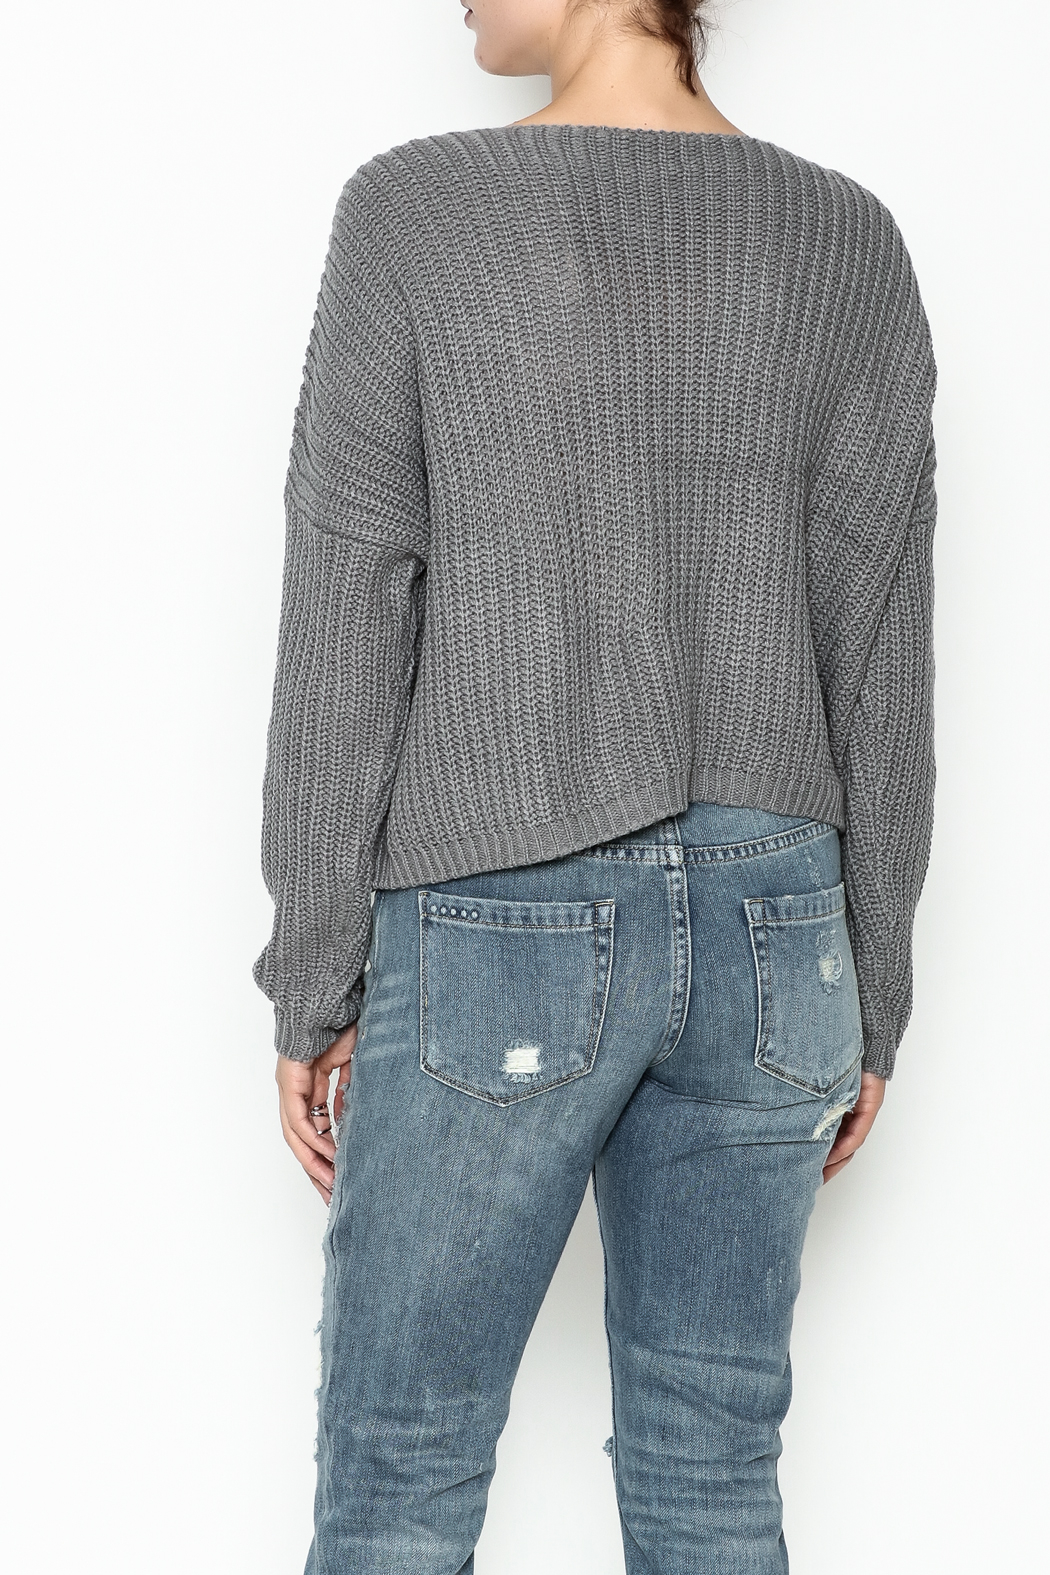 Do-Be Tie Pocket Sweater - Back Cropped Image